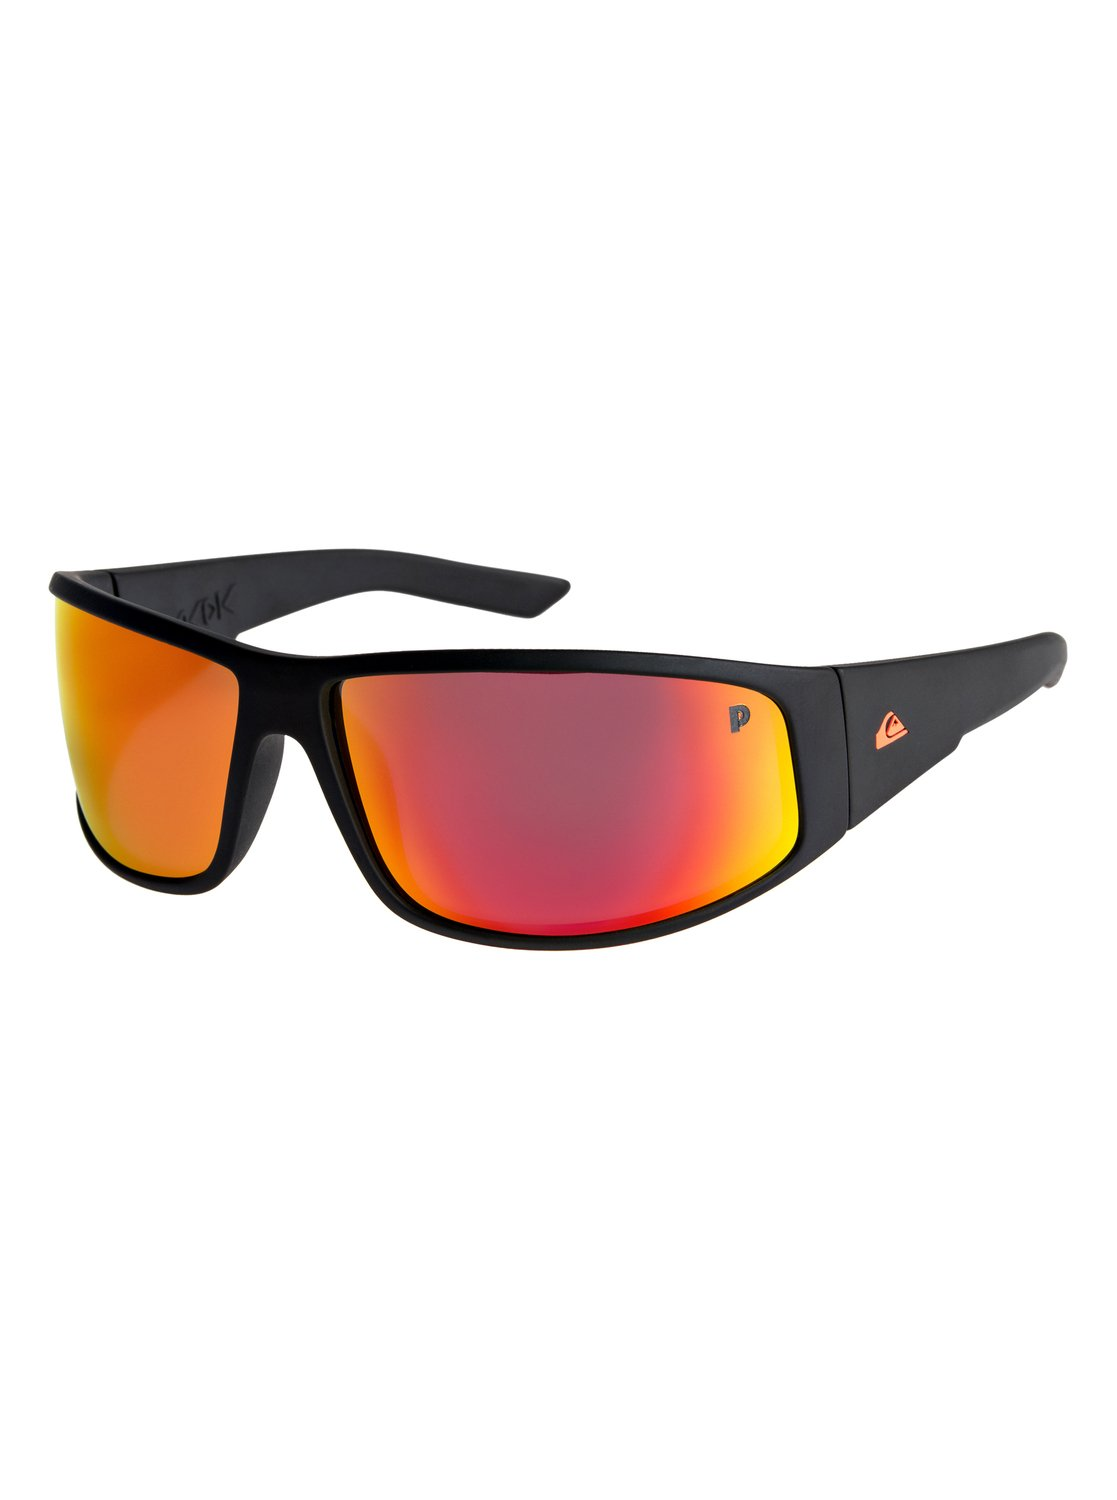 Akka Dakka Polarized Floatable - Sunglasses